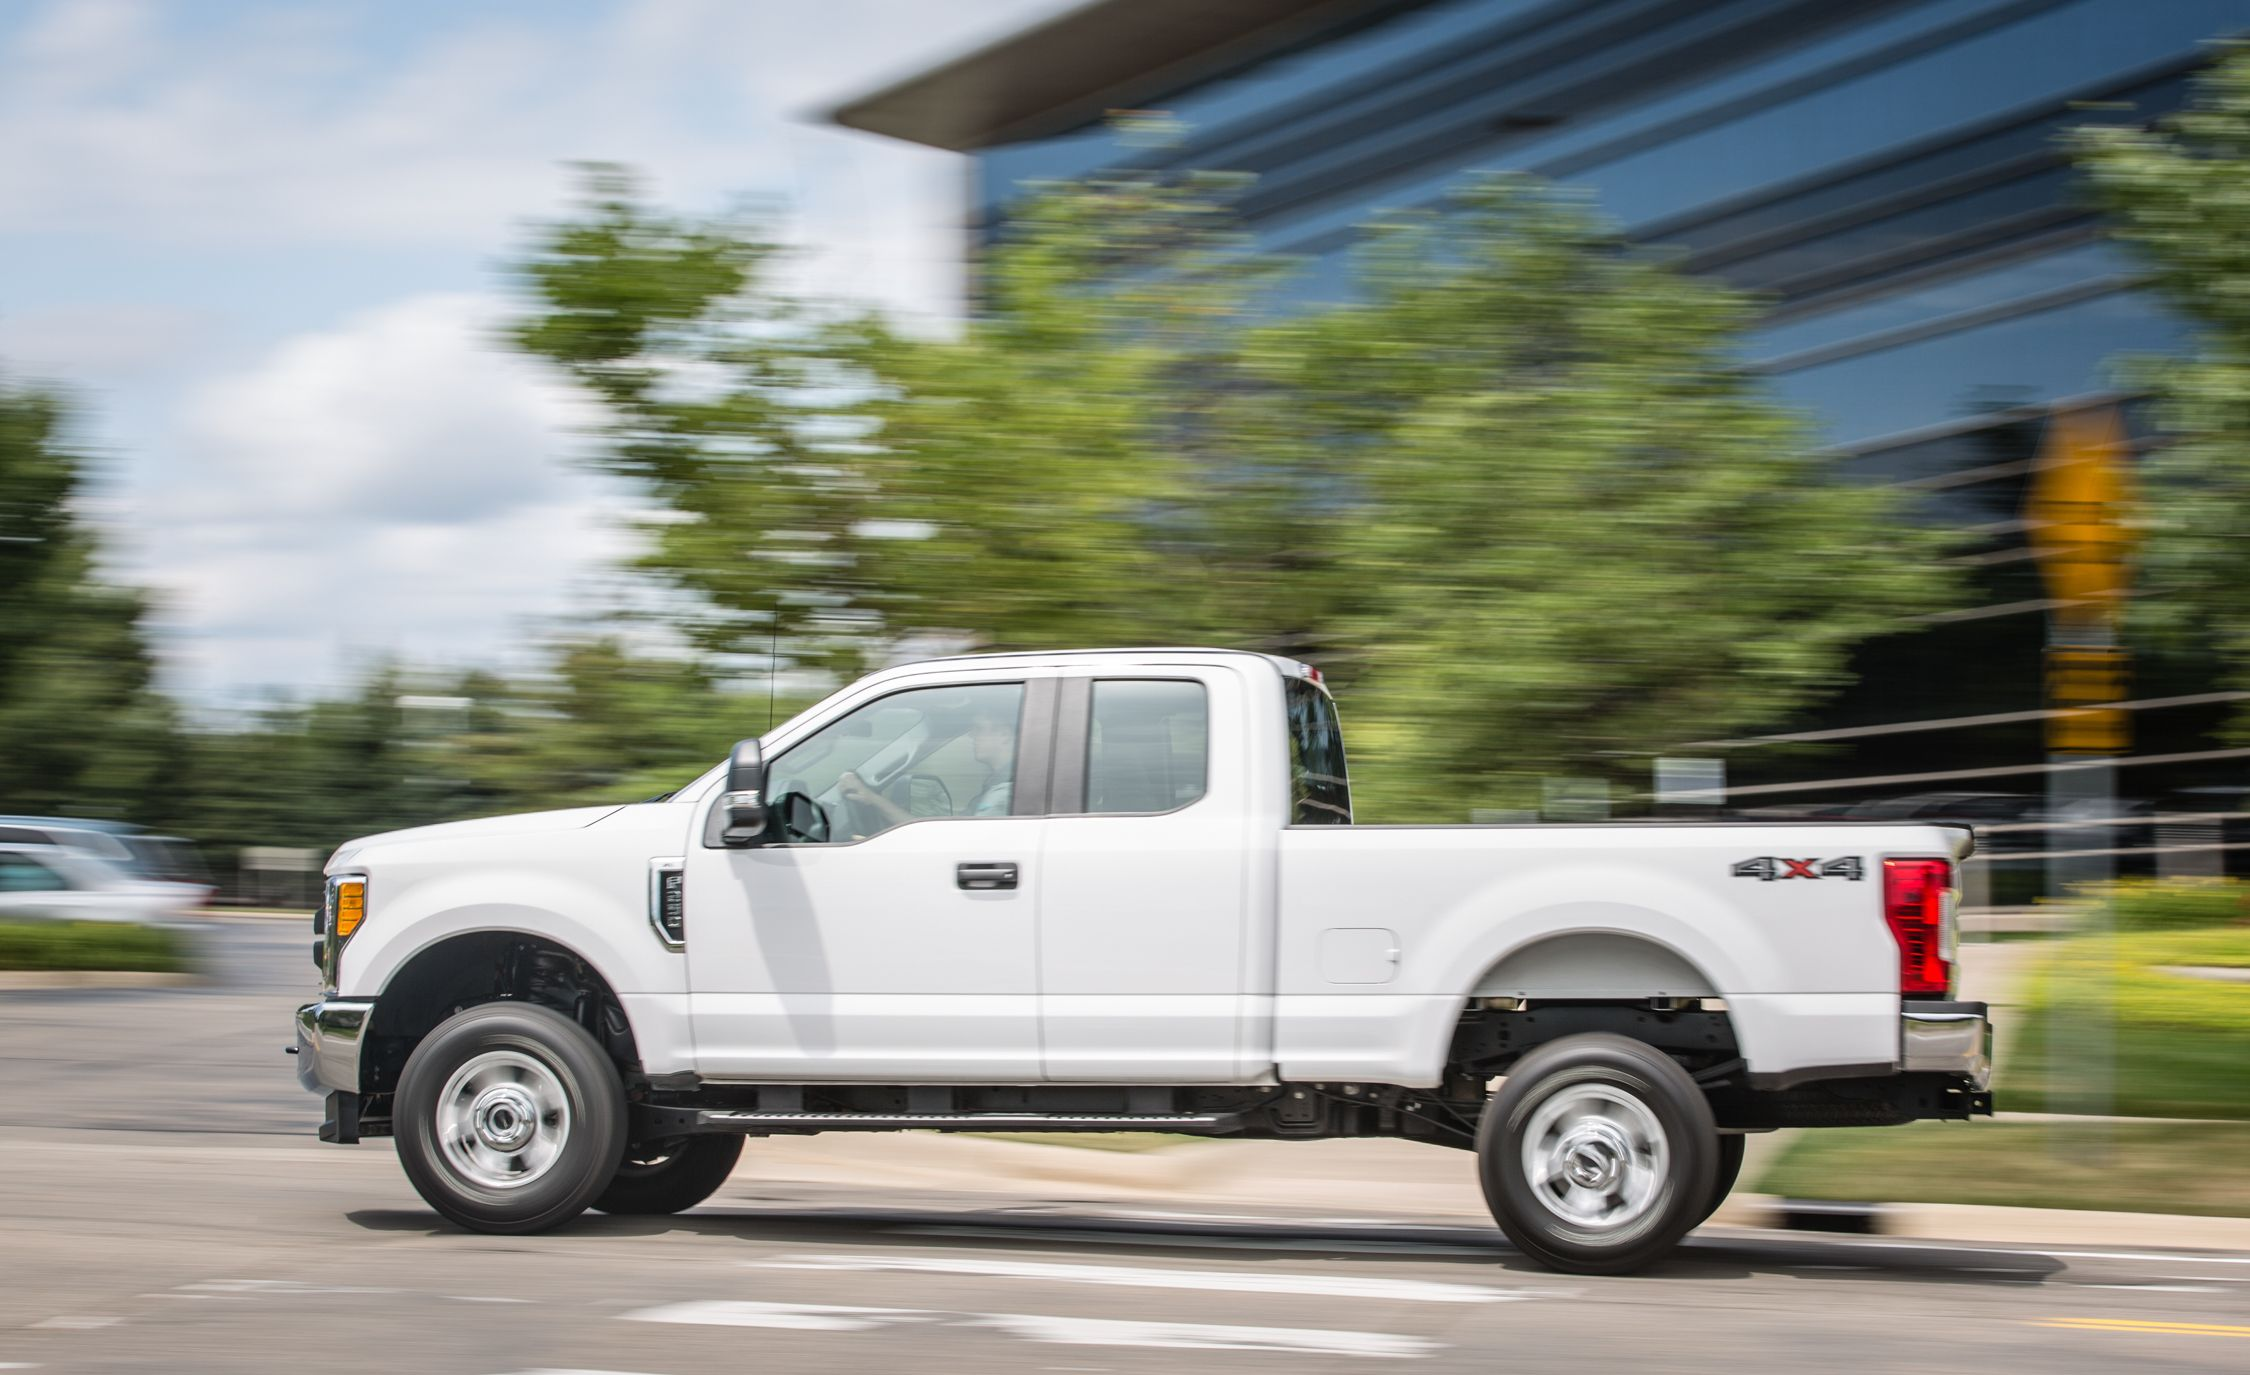 Ford F 250 Super Duty Reviews Ford F 250 Super Duty Price Photos